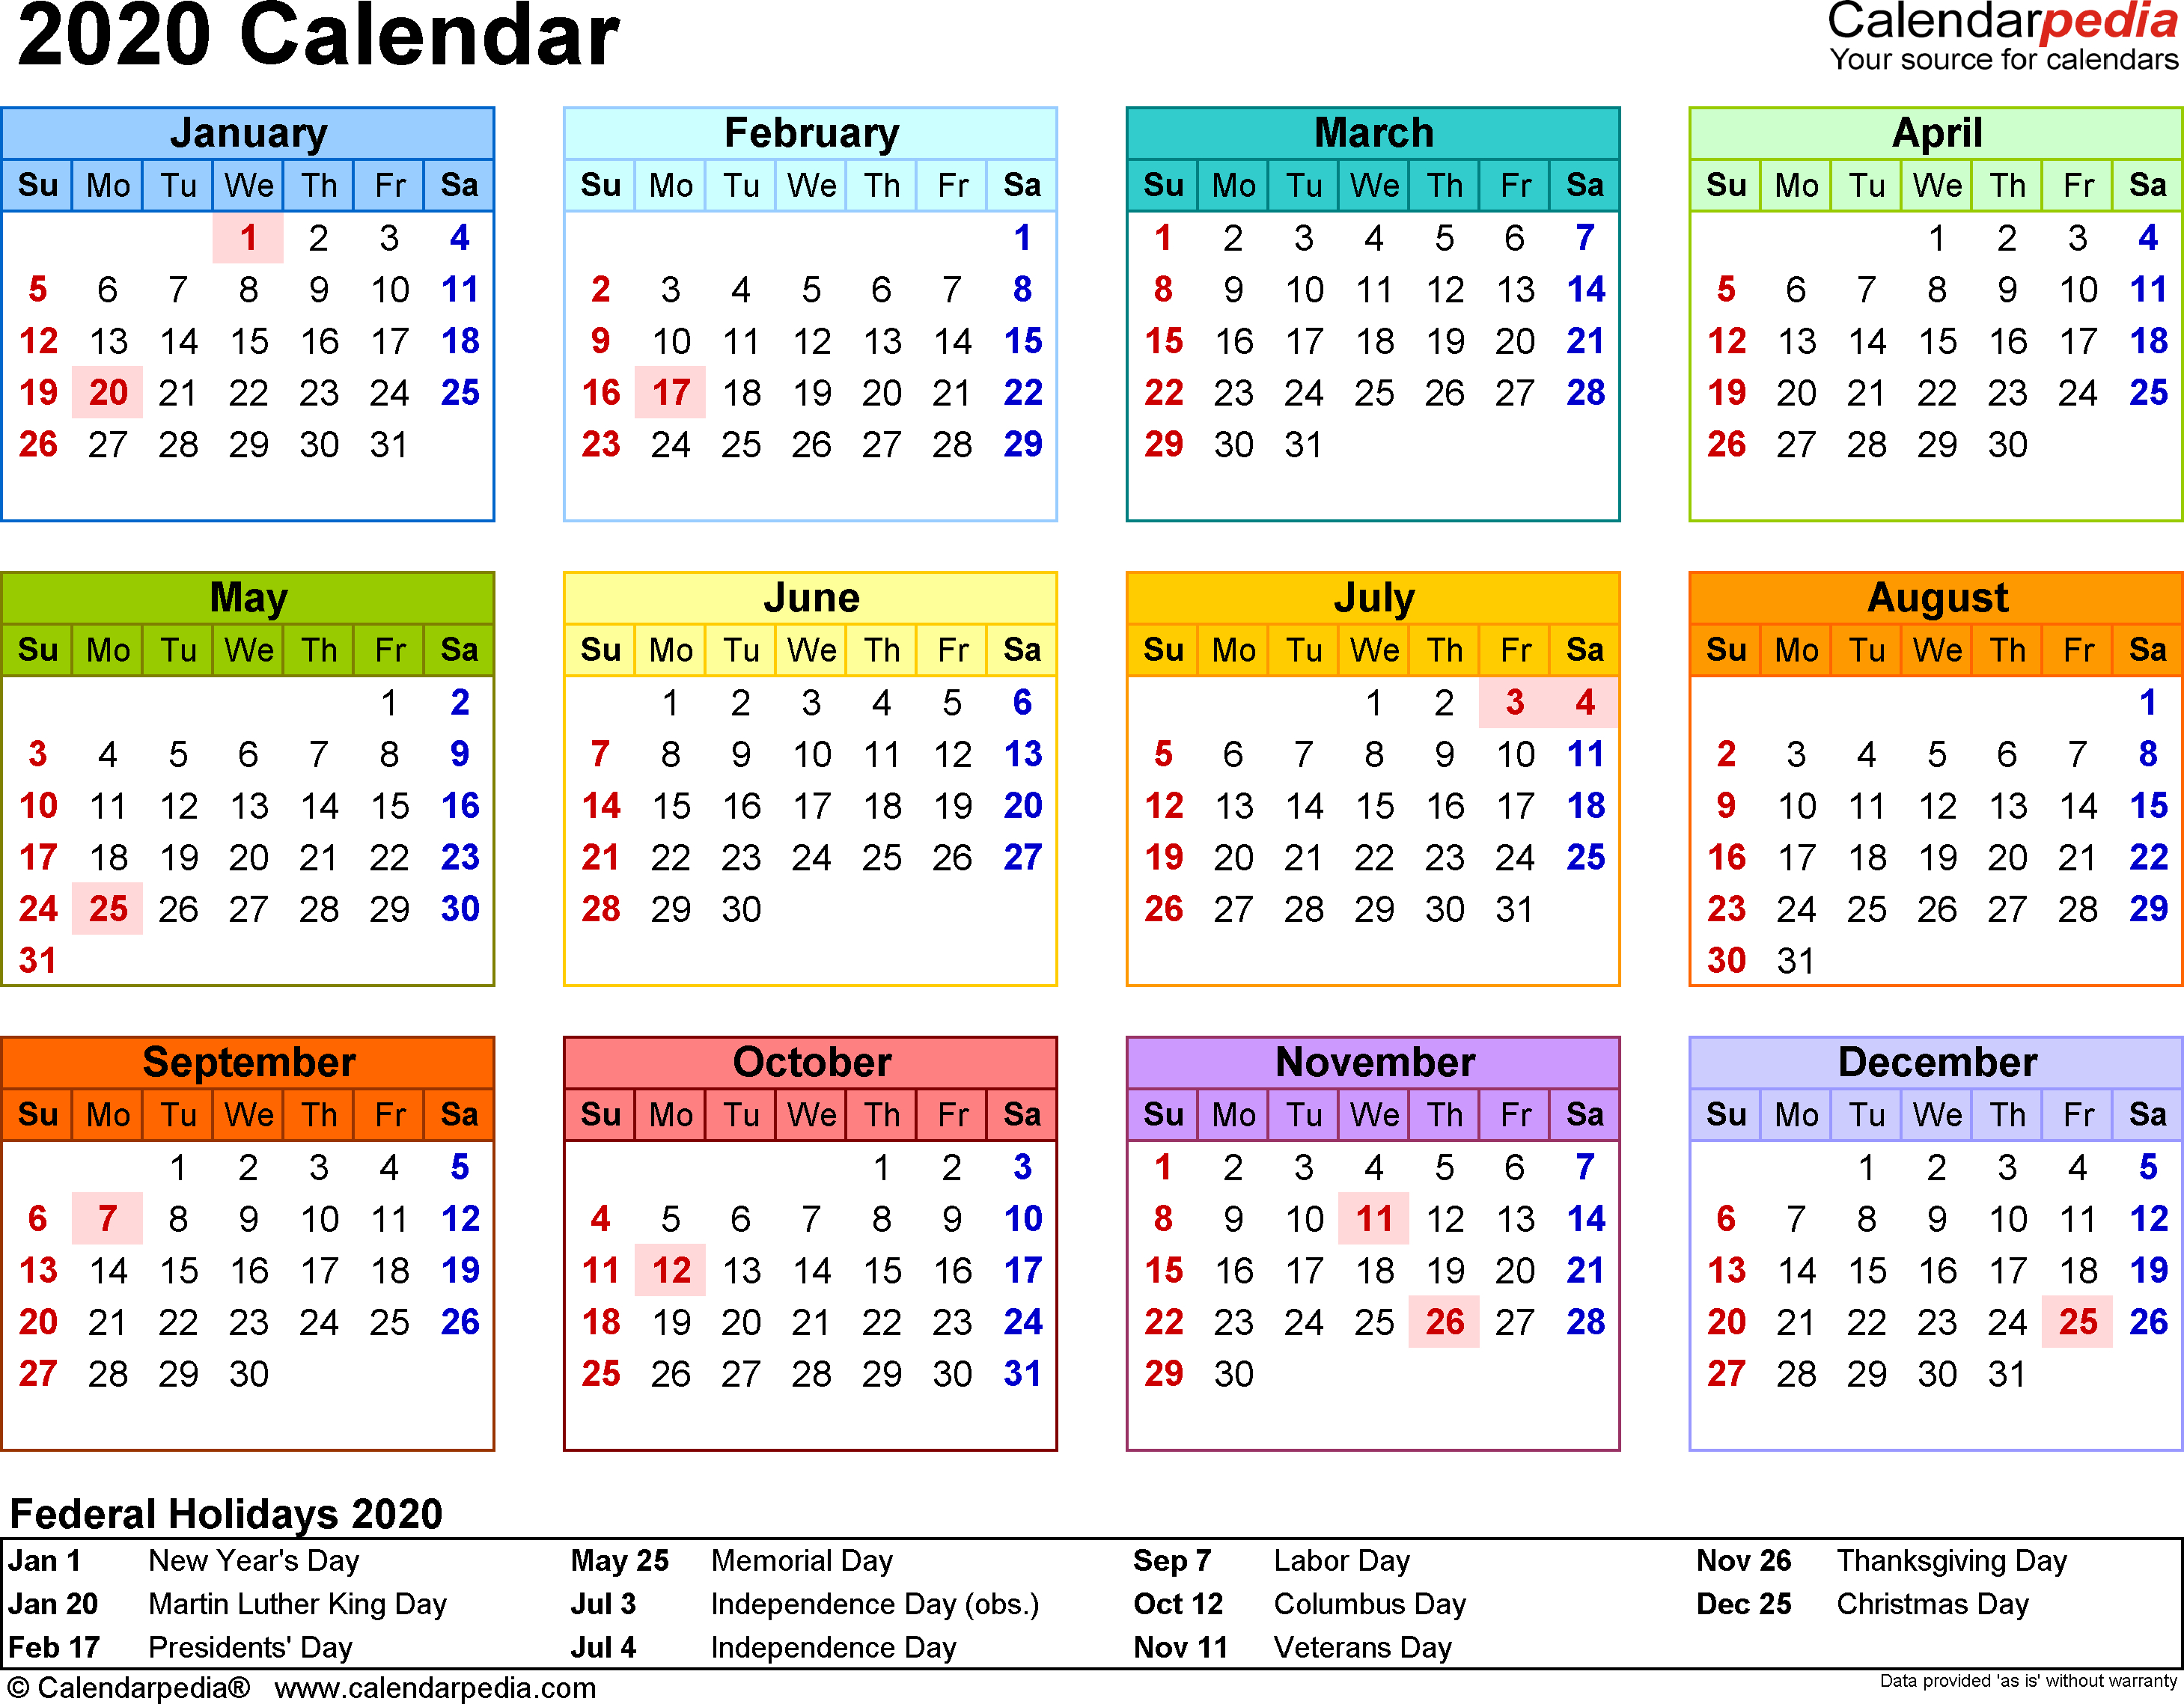 2020 Calendar Excel – Calendar Printable Week intended for 2020 Calendar Hk Excel